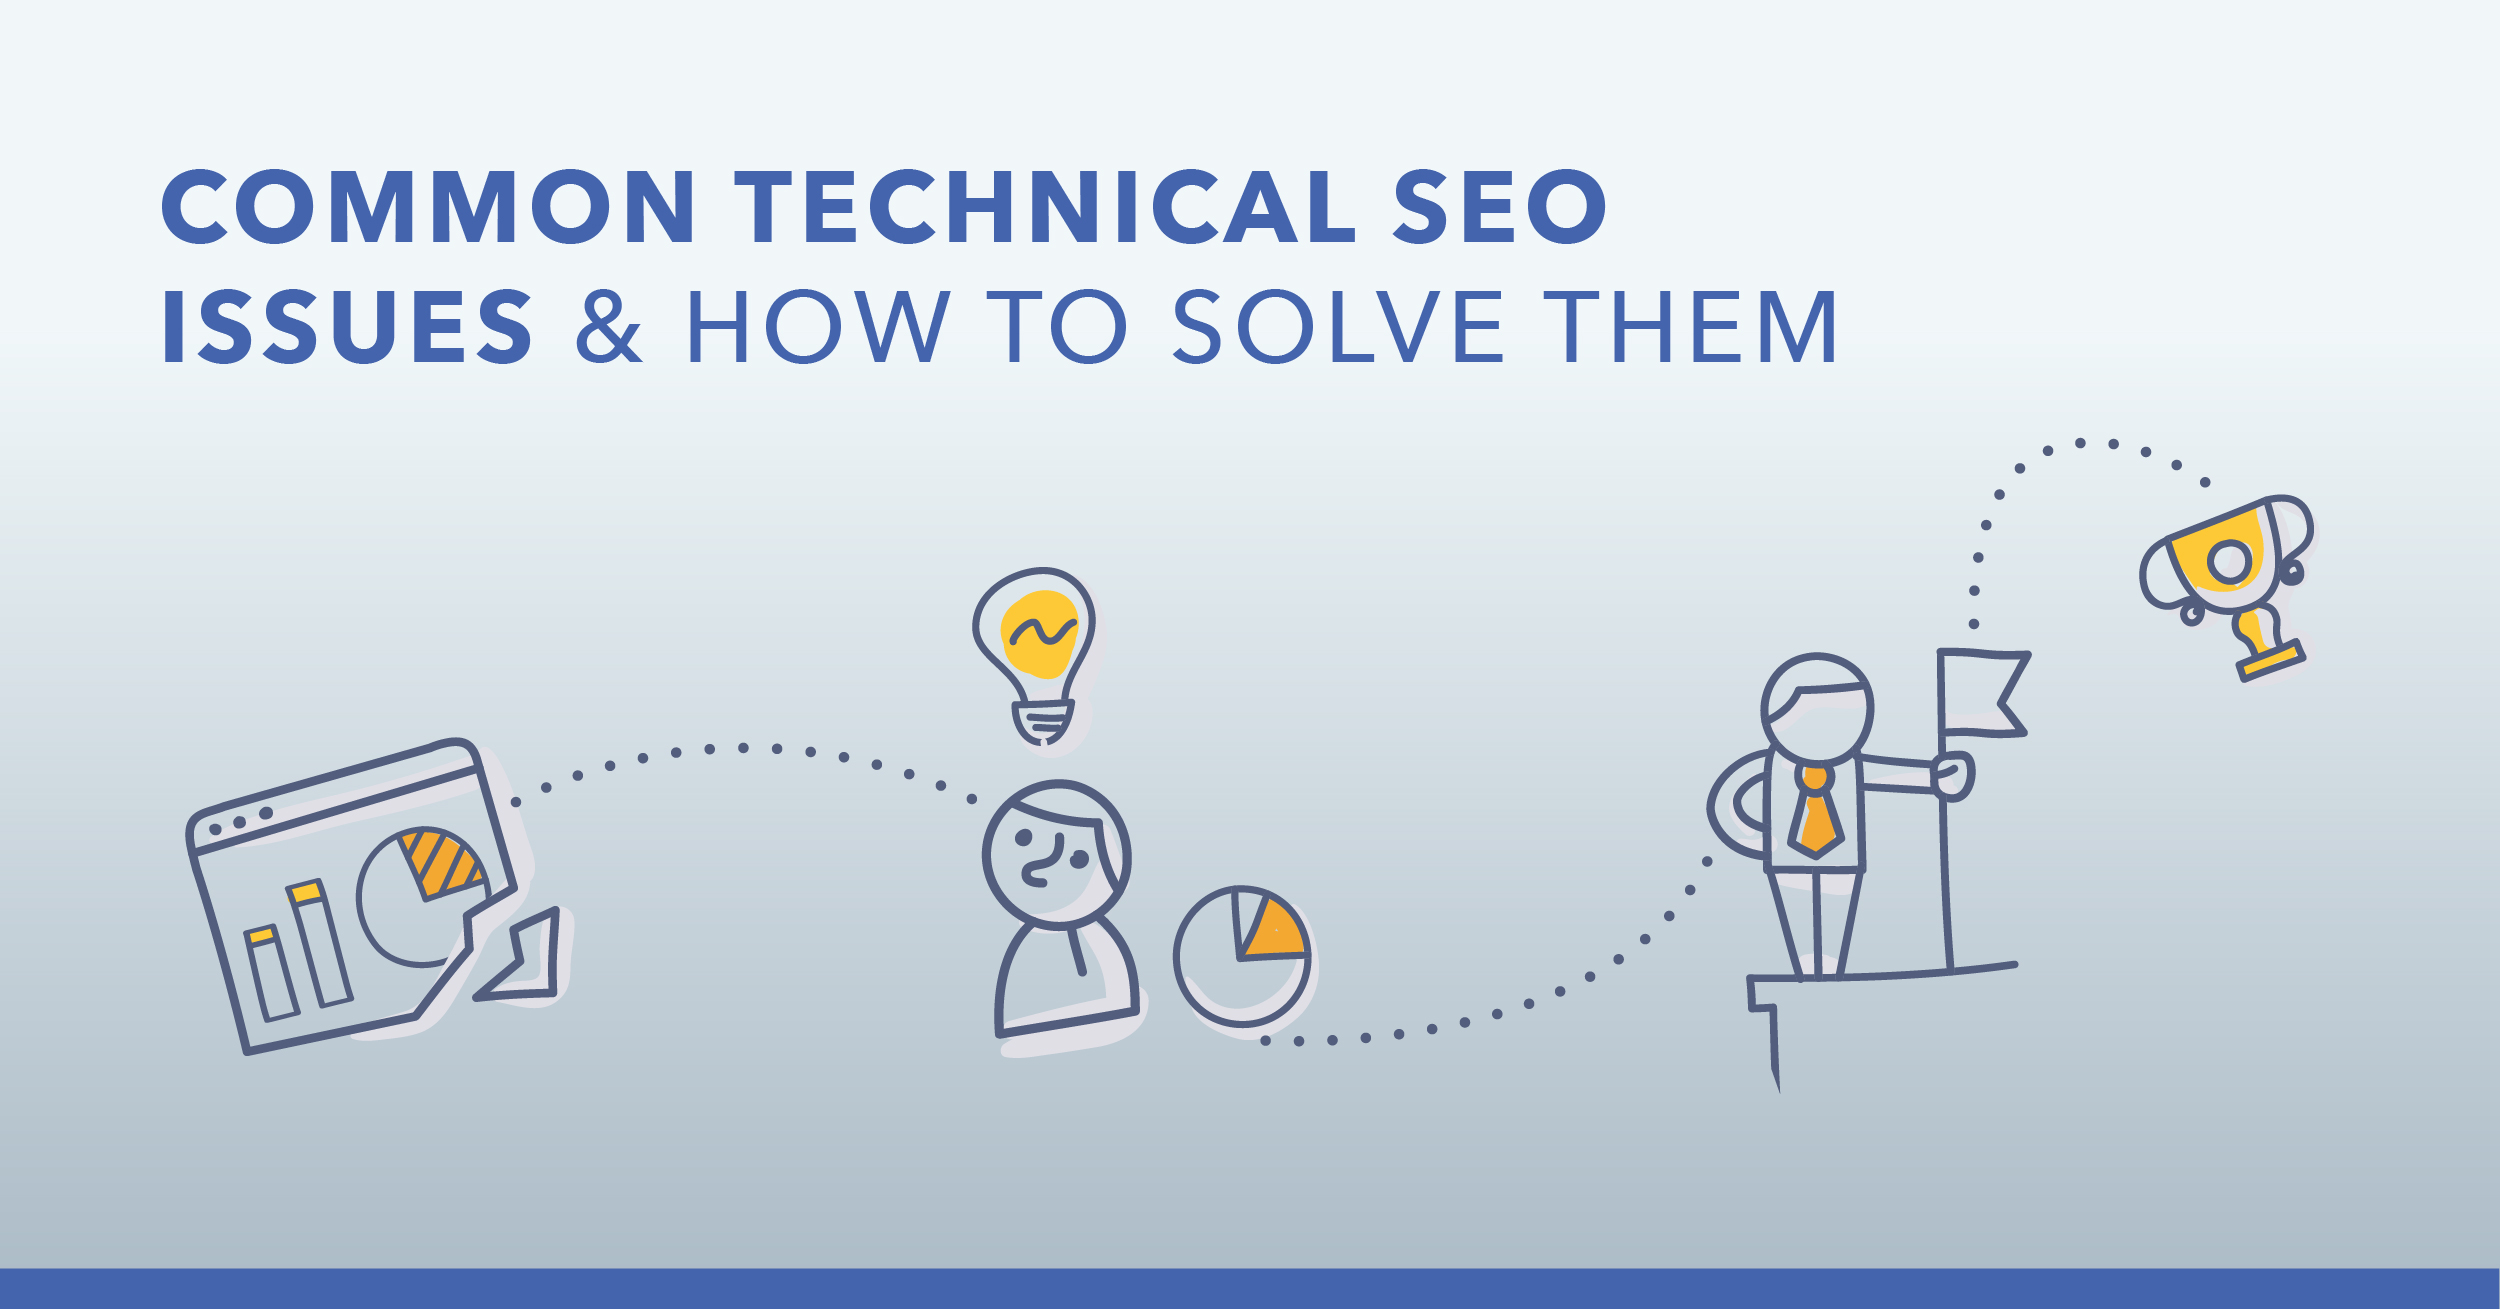 15 Common Technical SEO Issues and How to Solve Them